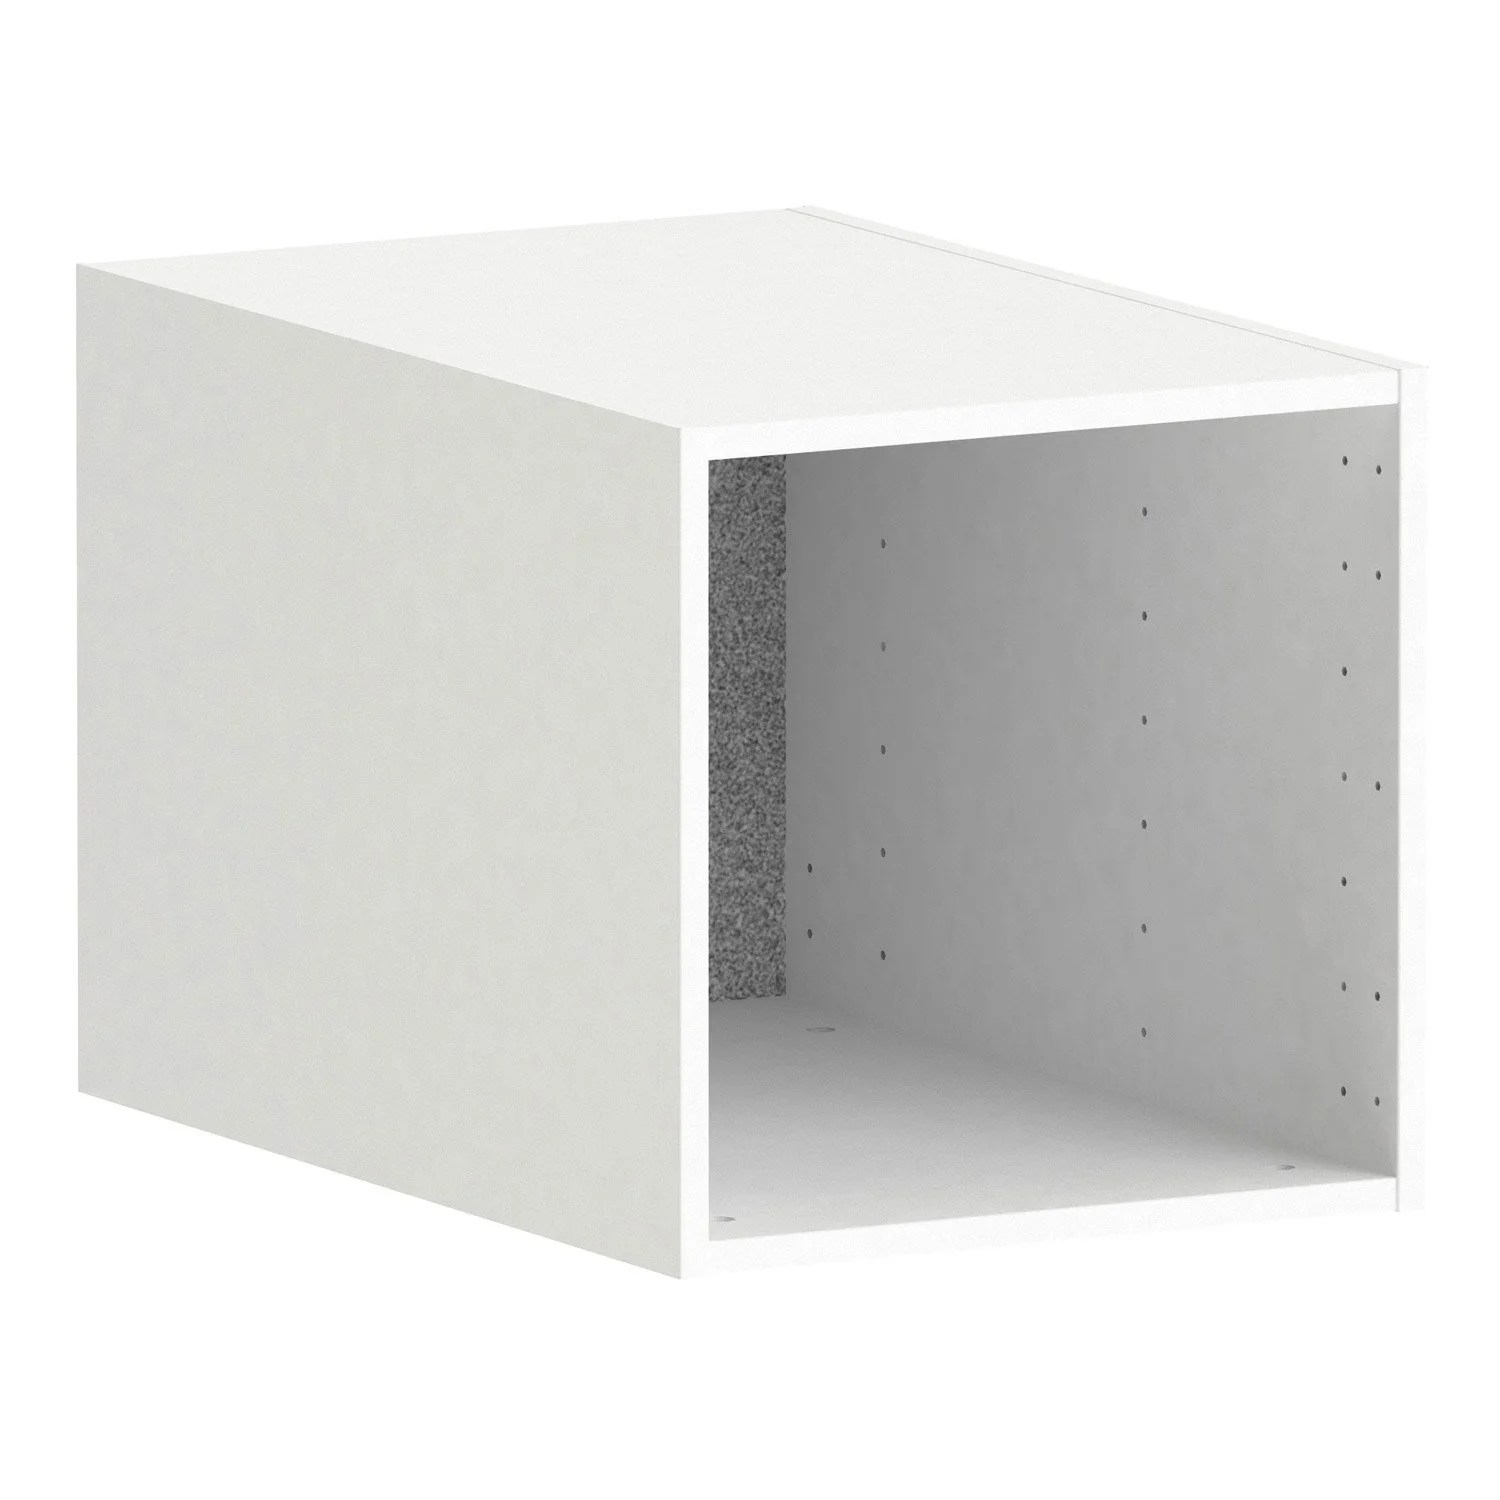 Caisson Spaceo Home Leroy Merlin Caisson Spaceo Home 40 X 40 X 60 Cm Blanc Leroy Merlin